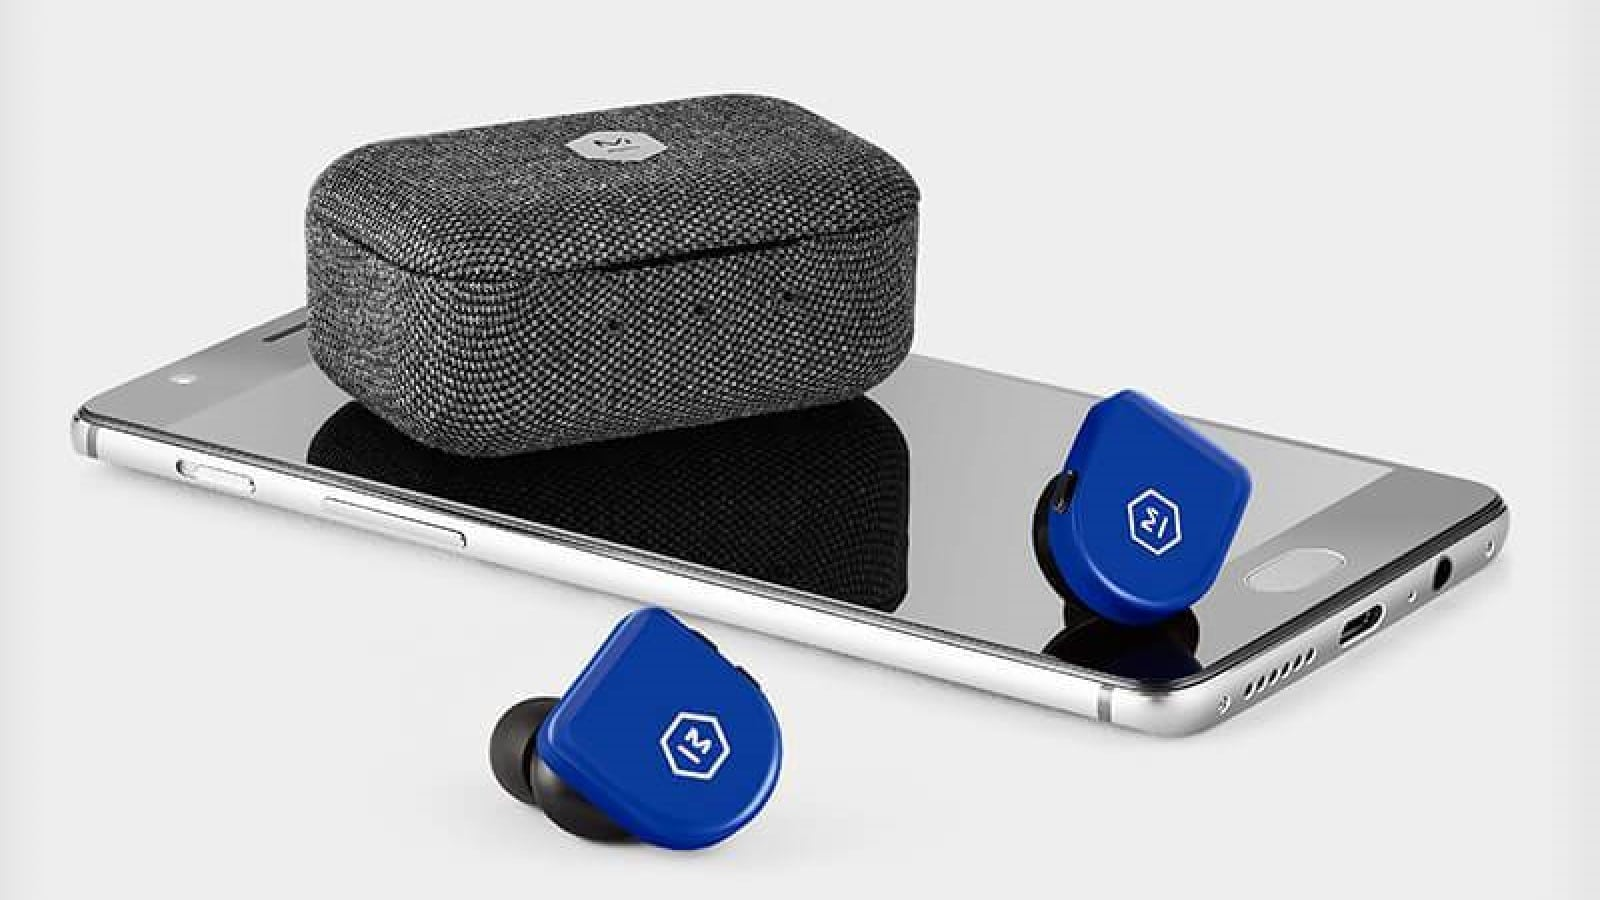 mw07 go earbuds on a smartphone